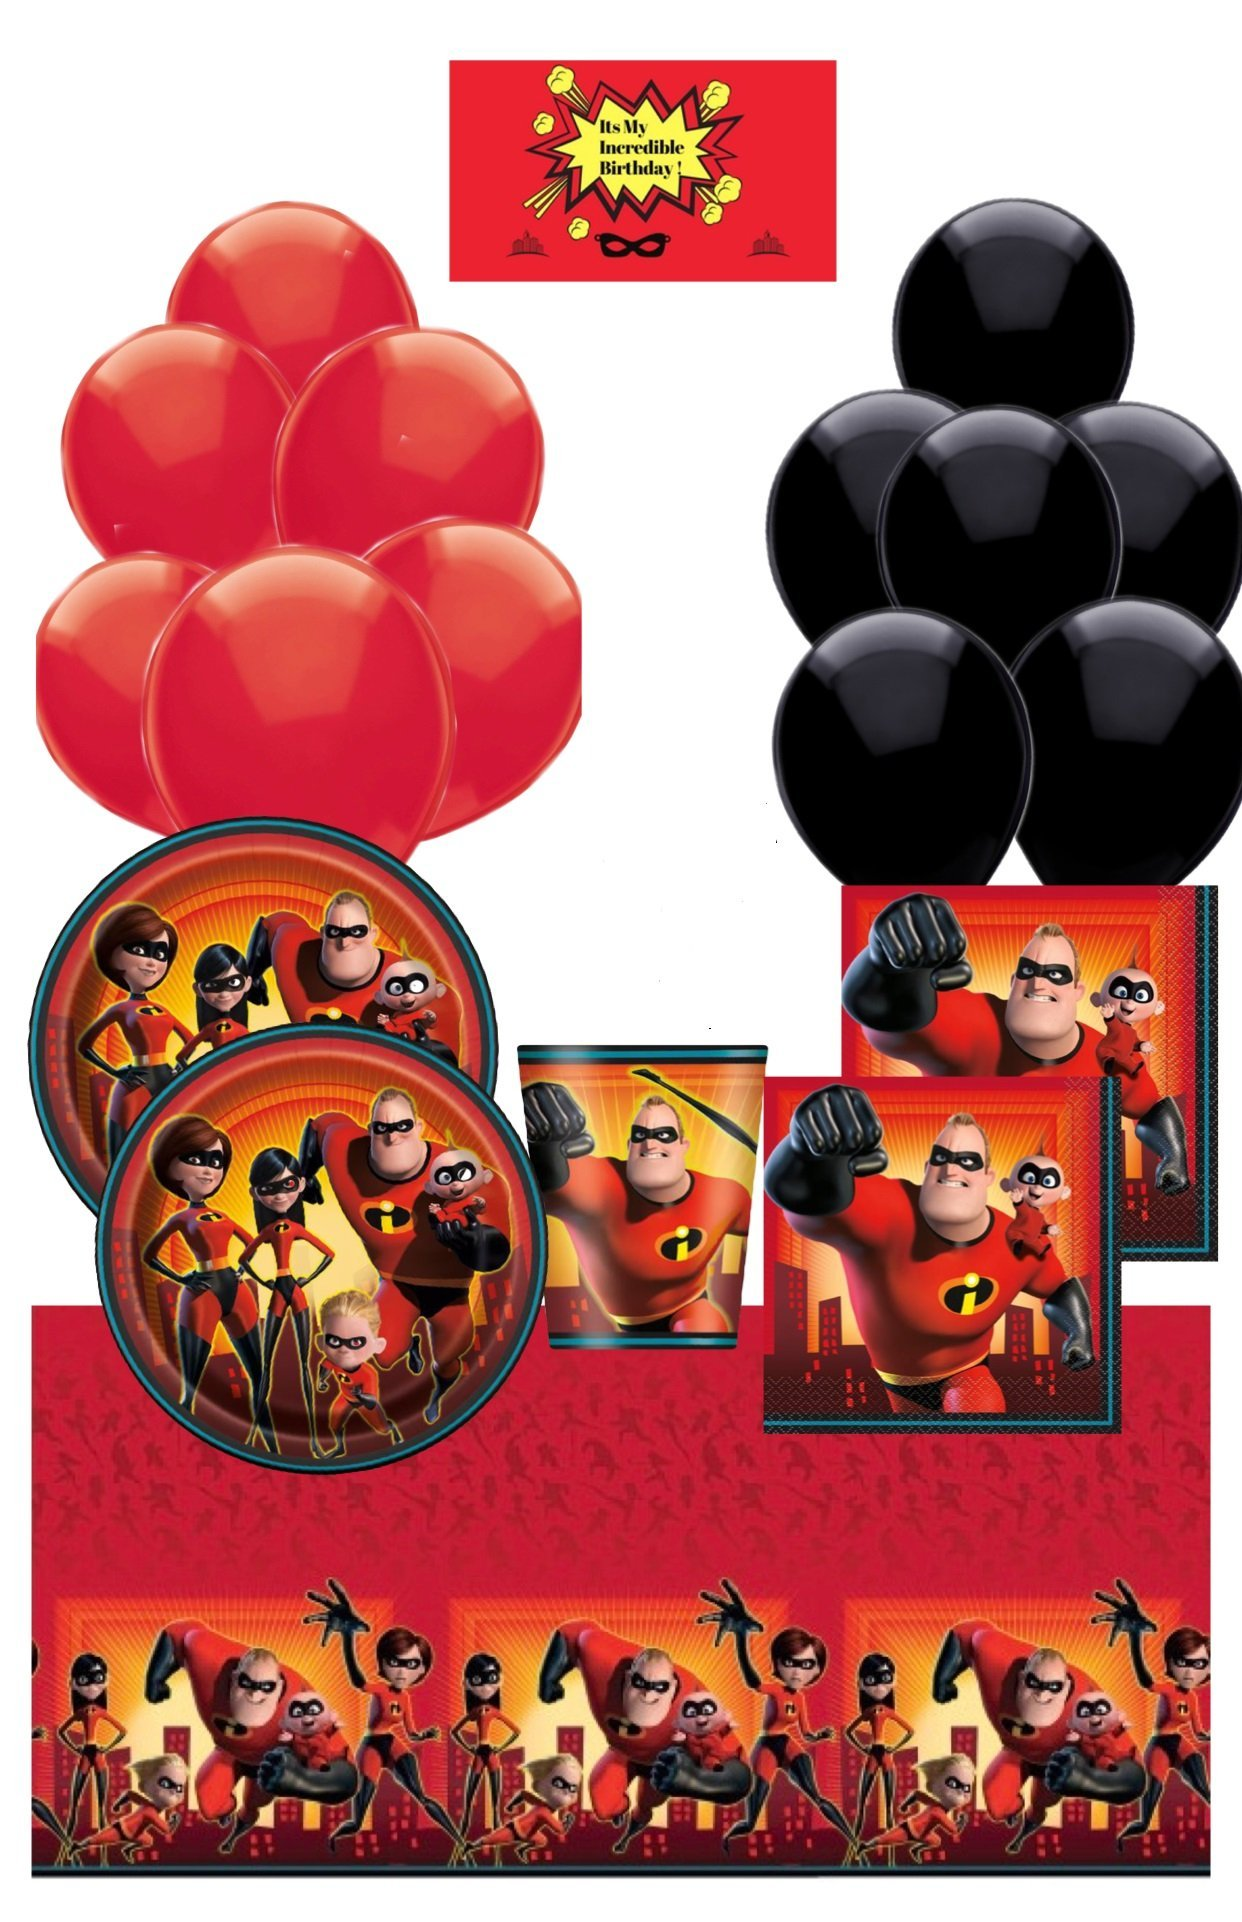 Incredibles 2 Birthday Party Supplies Pack for 16 - Incredibles 2 Table Cover, Plates, Cups, Napkins, Balloons and A Happy Birthday Sticker